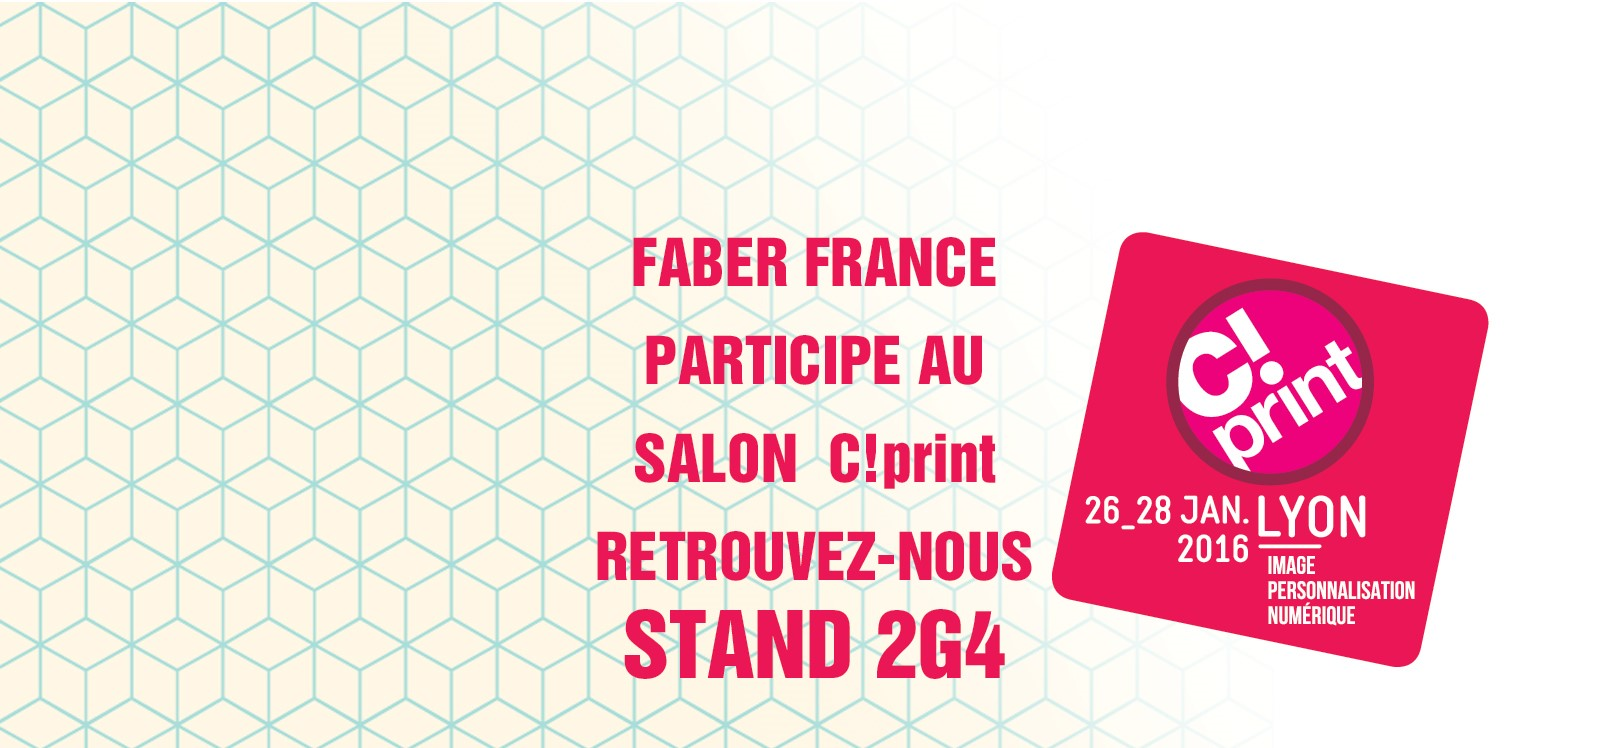 faber france exposant au salon c print faber france